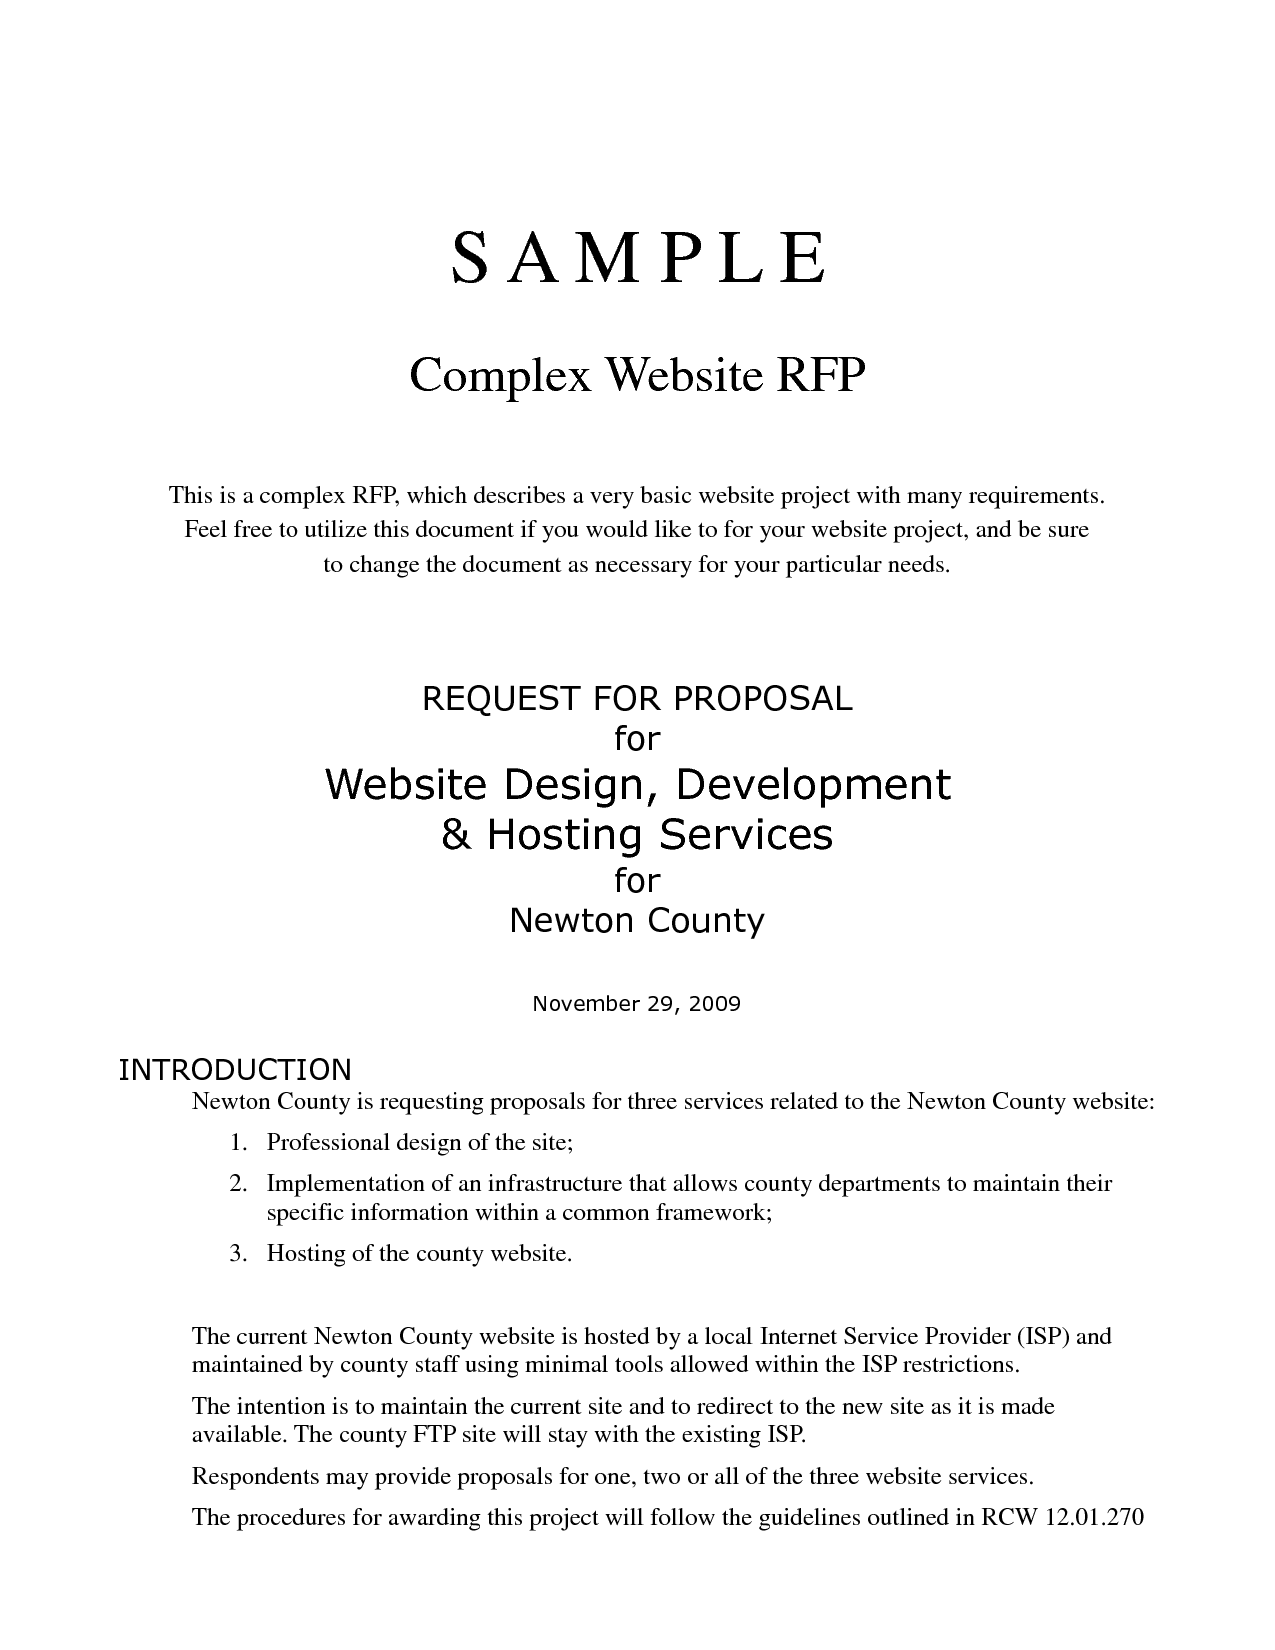 How To Write A Request For Proposal For A Website  The Best